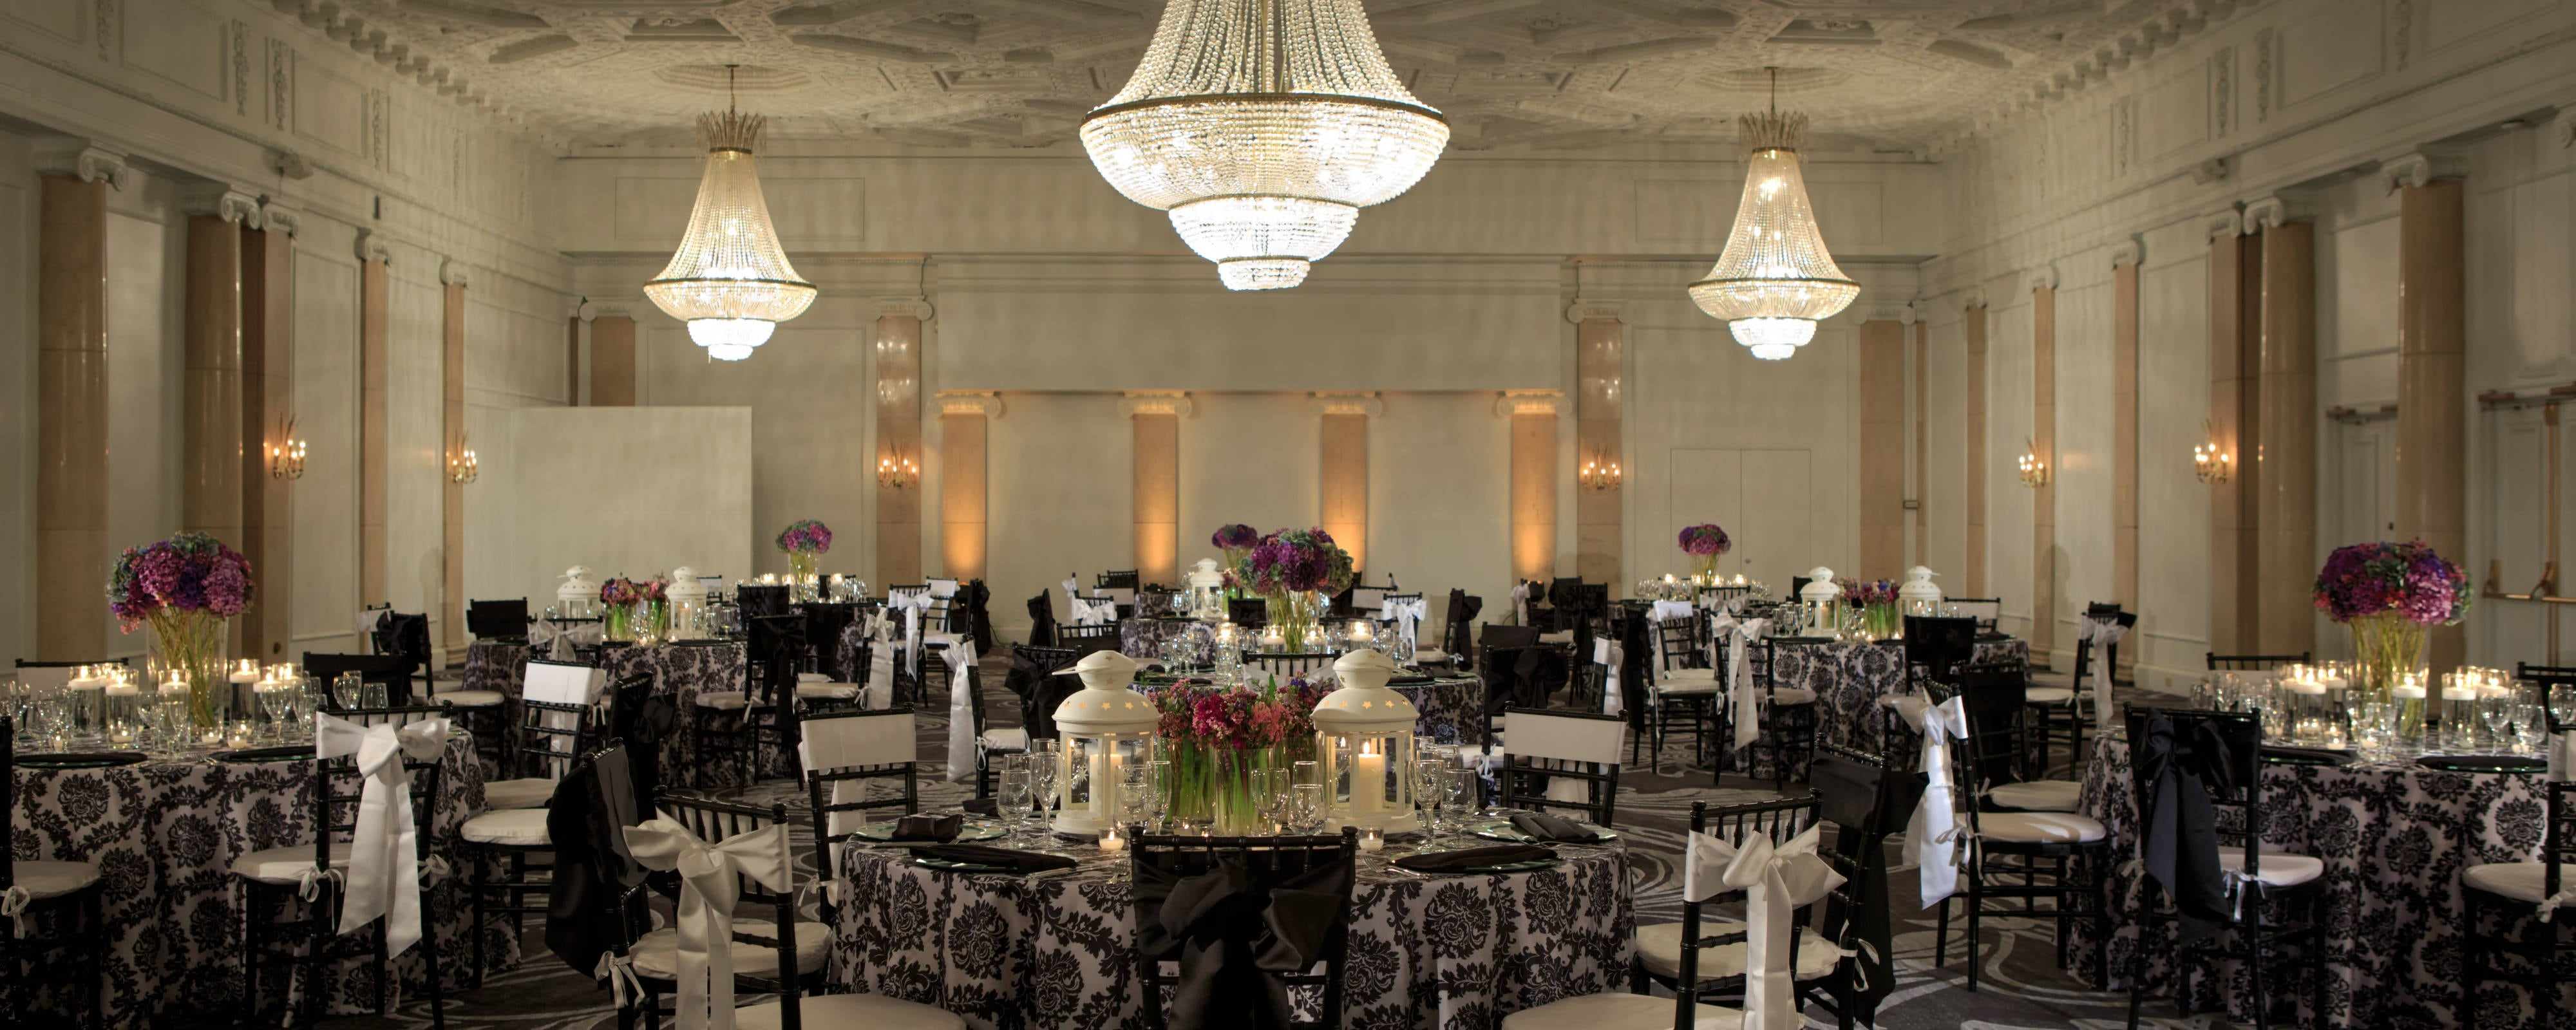 Empire Ballroom – Event & Wedding Setup